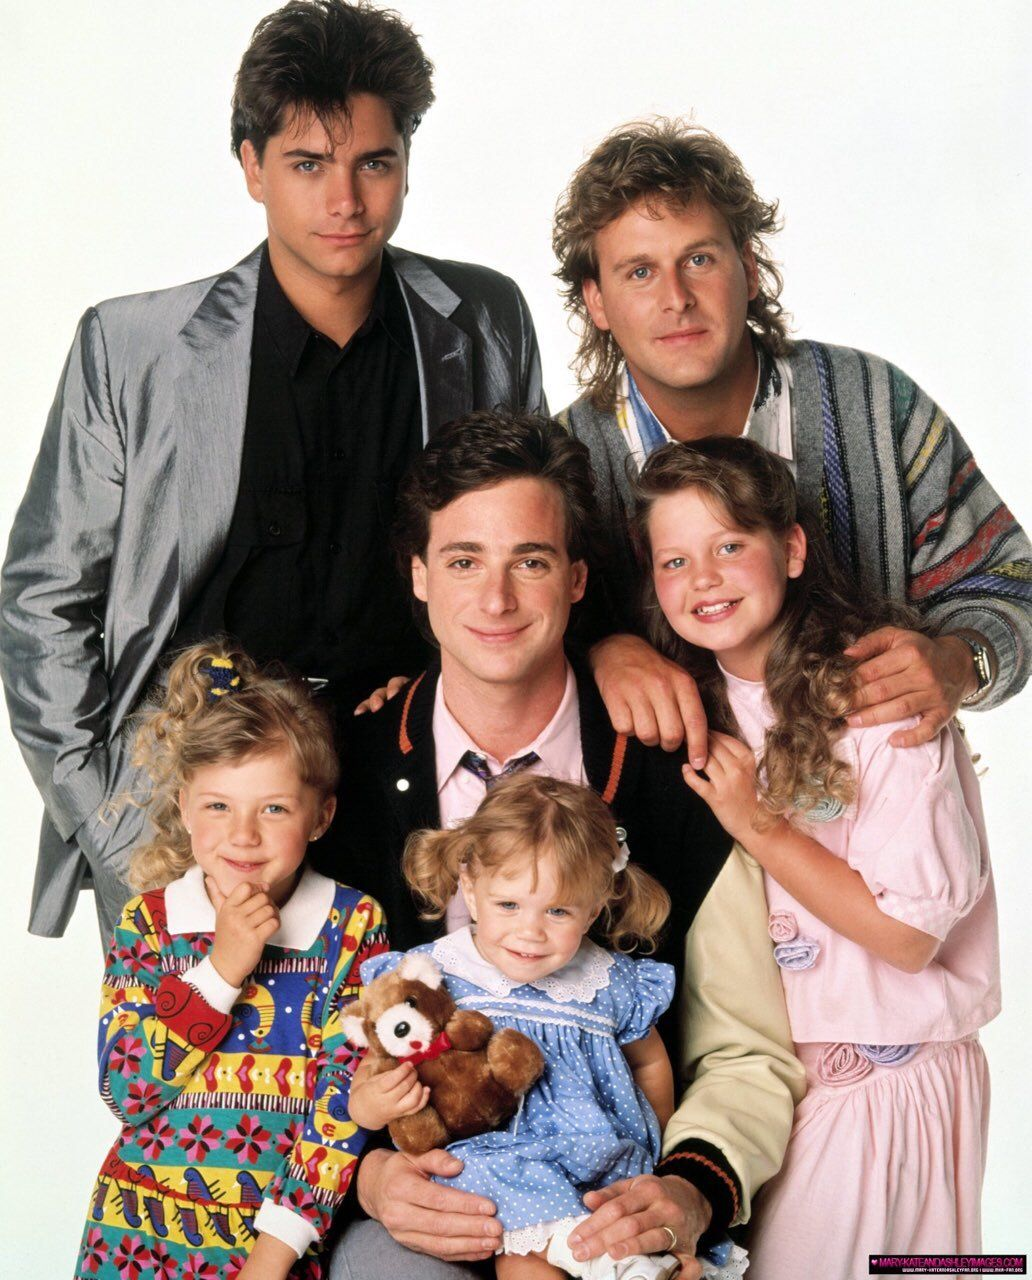 Fuller House On Twitter Best Cast Ever Pic Twitter Com Nvphwjnslp Full House Full House Cast Uncle Jesse